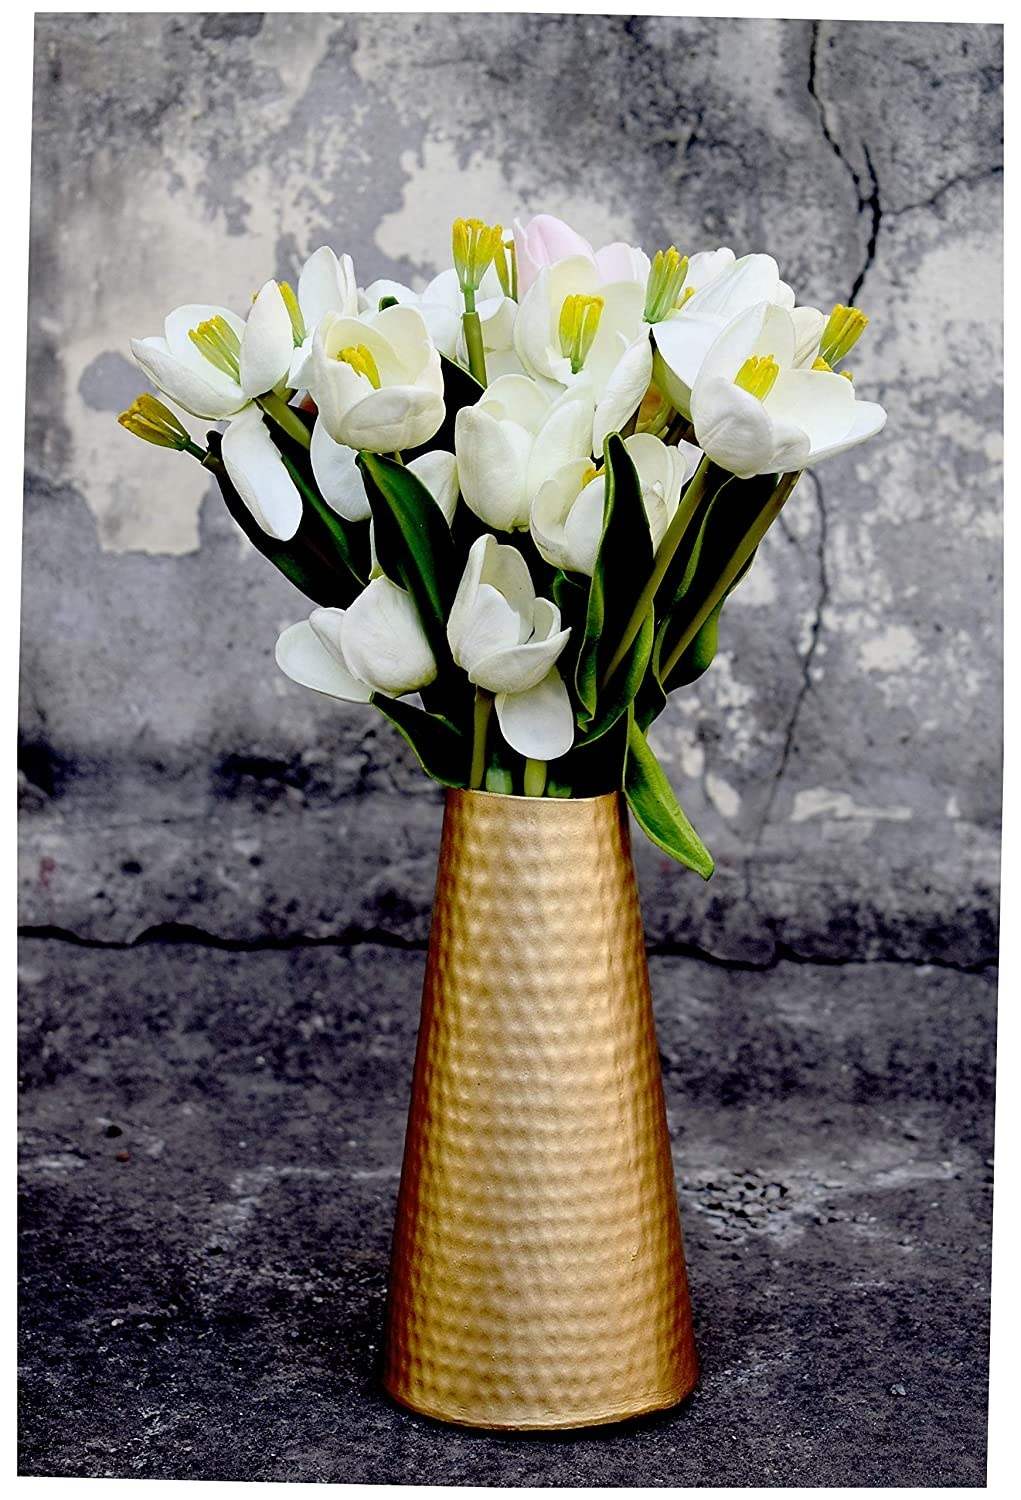 A golden vase with flowers in it